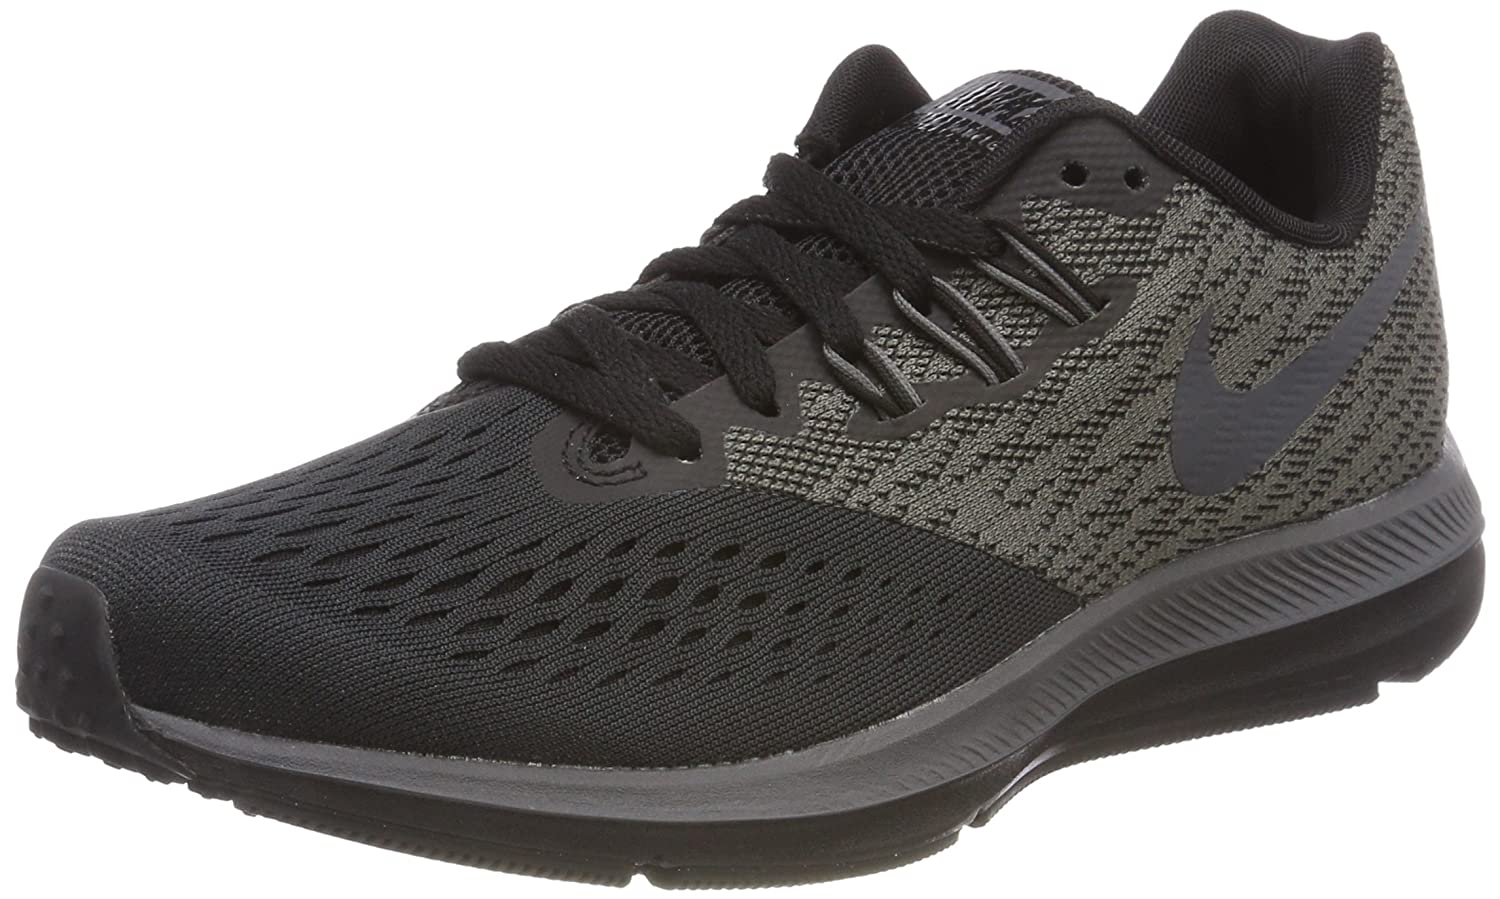 NIKE Womens Zoom FLO 4 Fabric Low Top Lace up Running Sneaker B01N3SOO73 6 B(M) US|Anthracite/Dark Grey-black